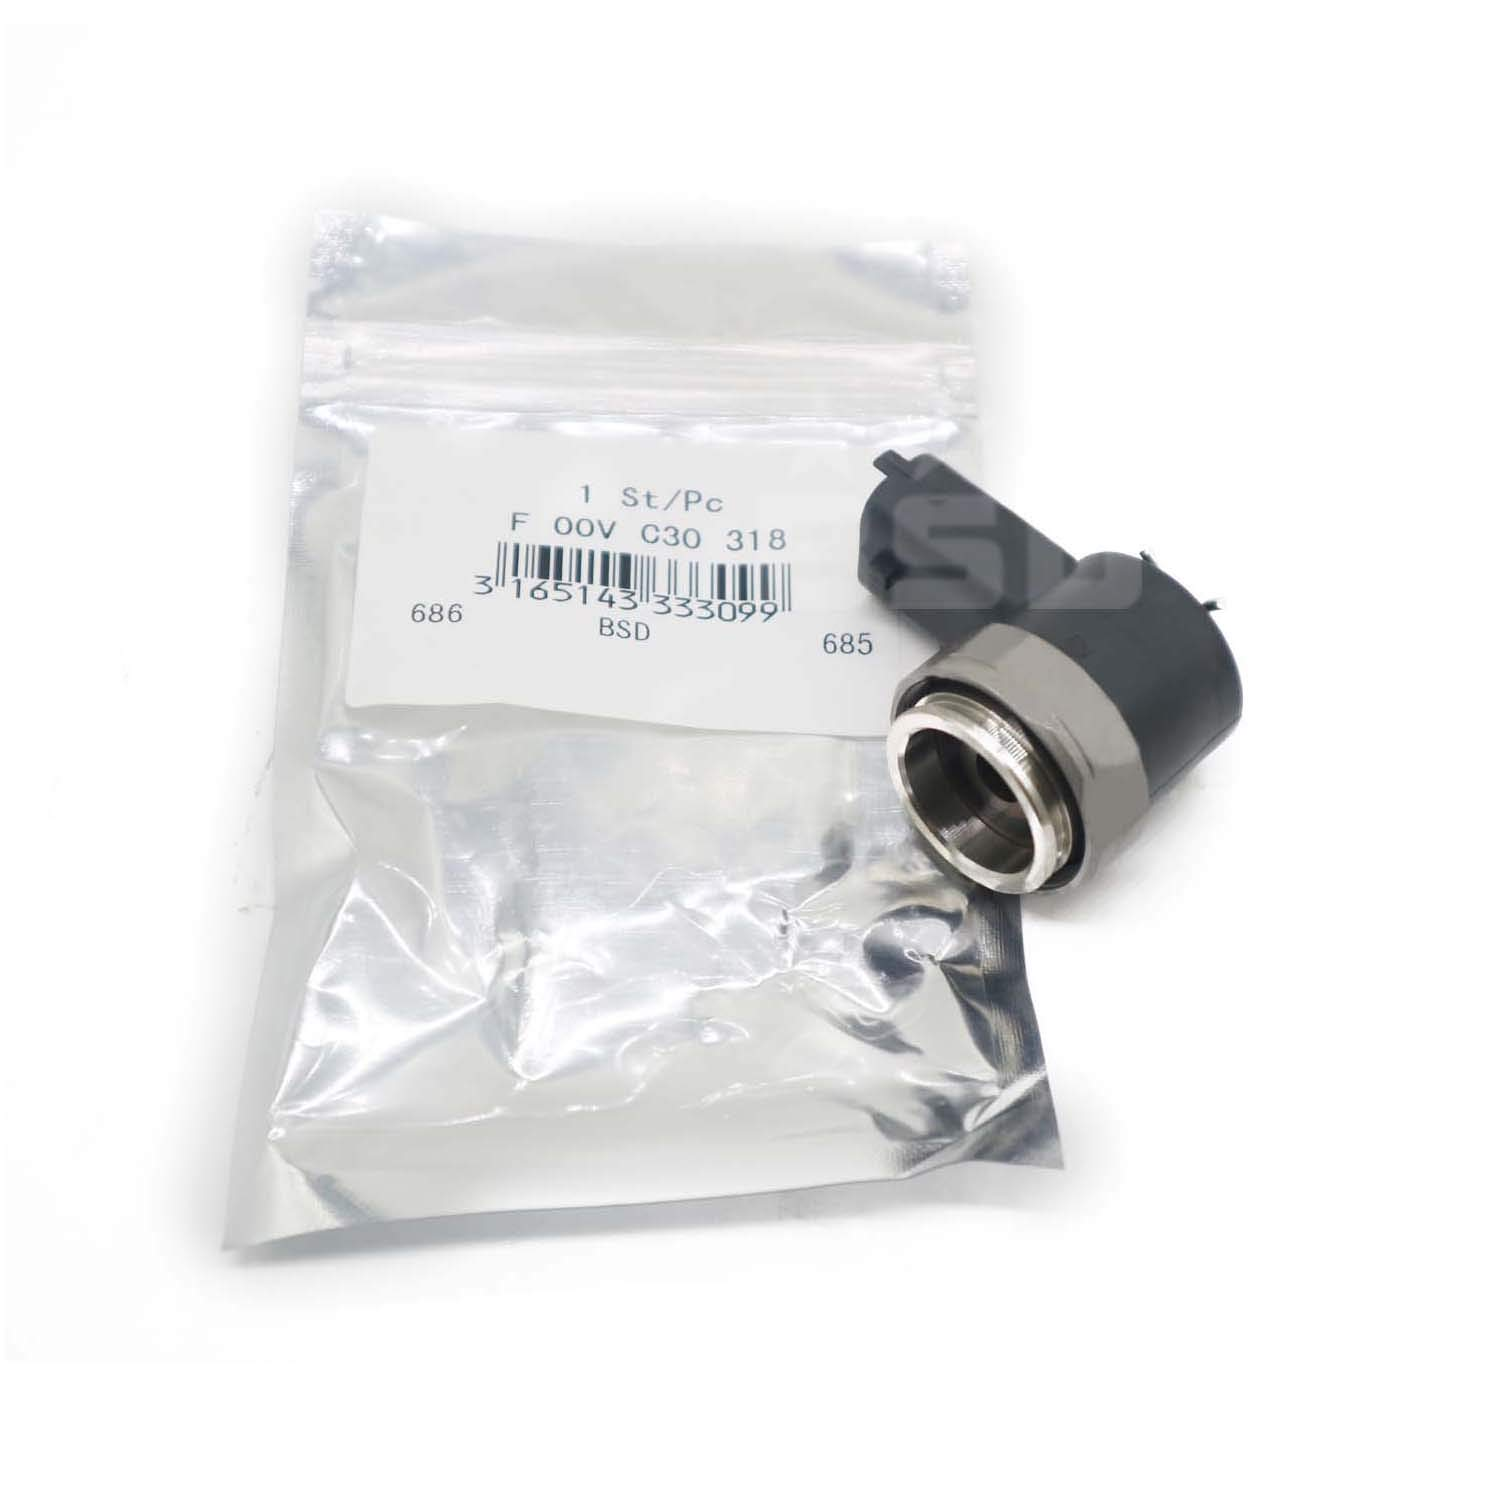 Solenoid Switch Valve Assembly Valve Repair Kit F00VC30318 for Common Rail Injector Magnet Connection Group